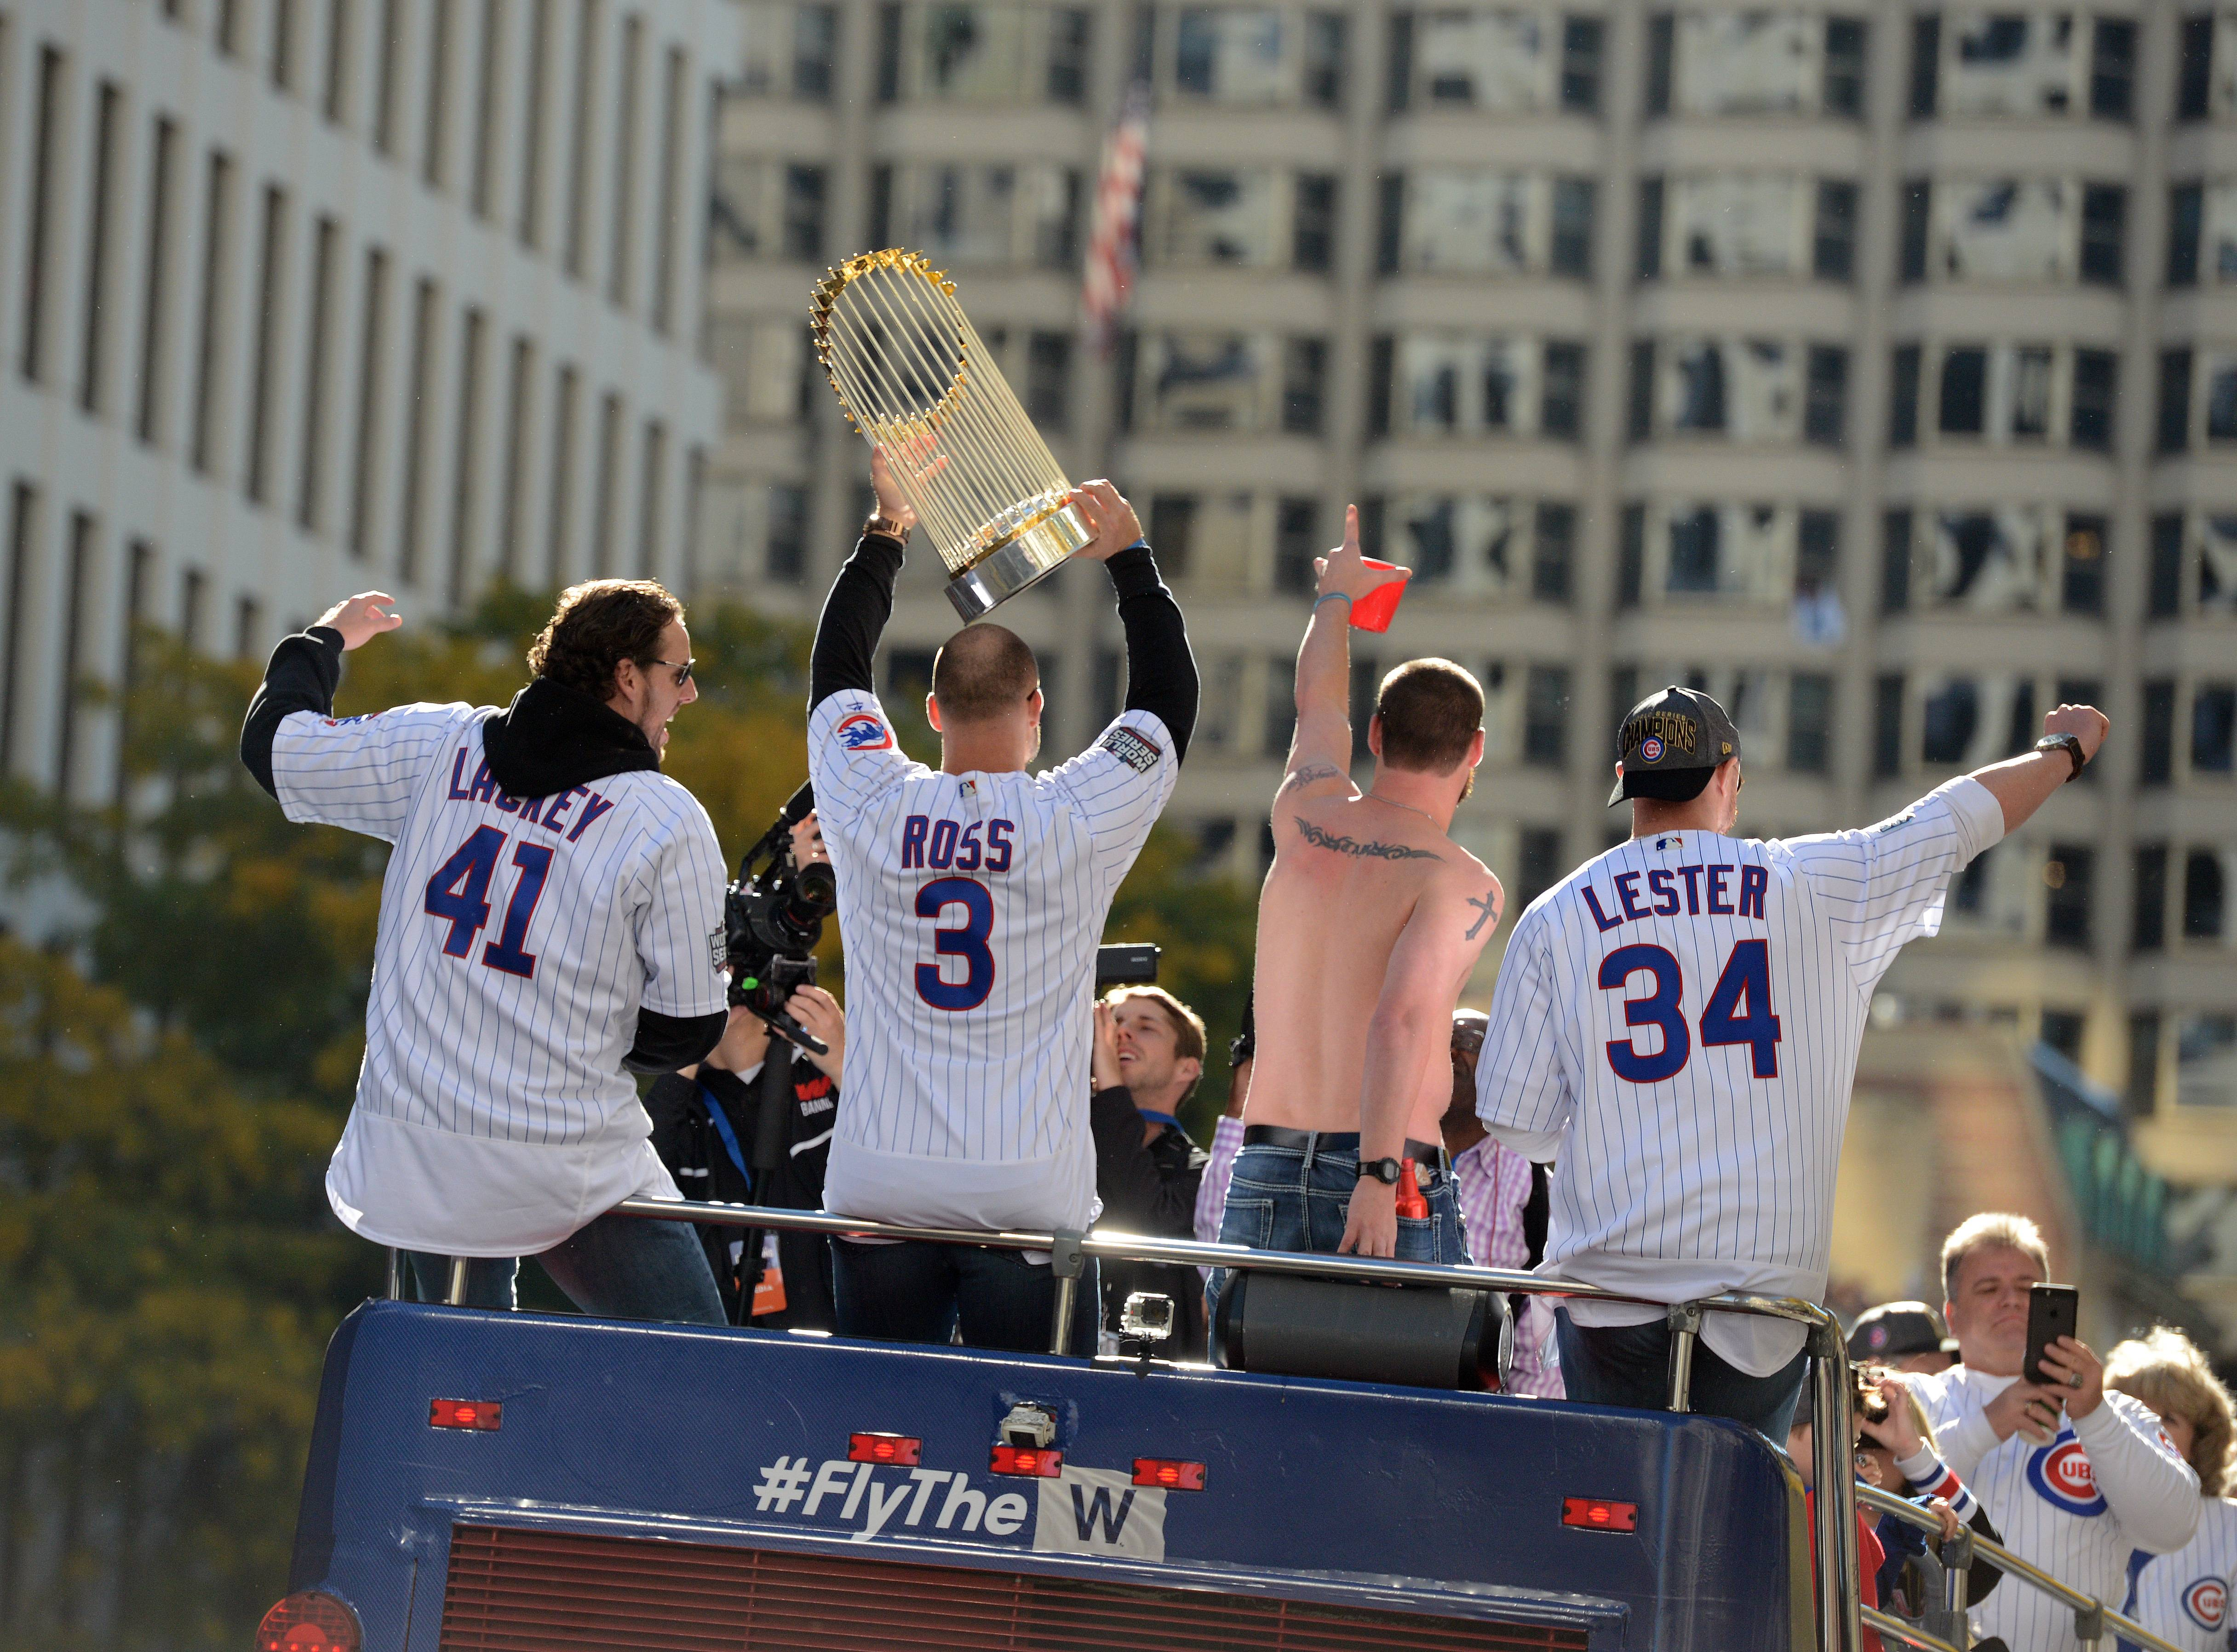 The Chicago Cubs celebrated their World Series win Friday with a parade that started at Wrigley Field and traveled down Michigan Avenue to end with a rally at Grant Park.